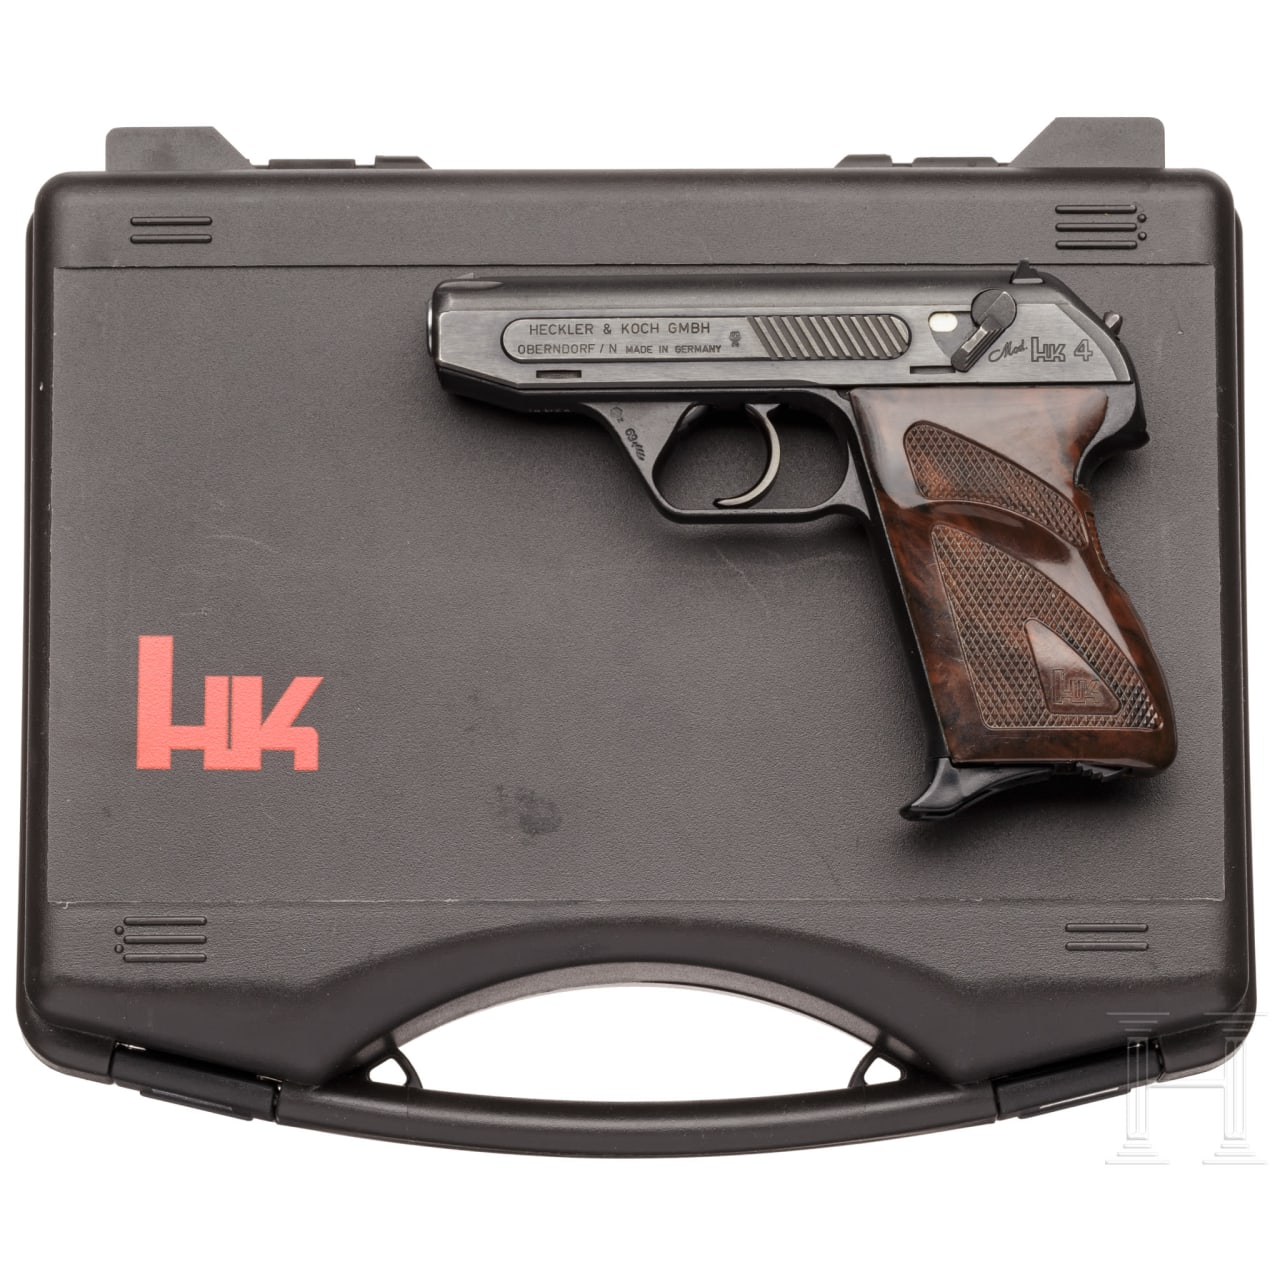 A cased Heckler & Koch M HK 4